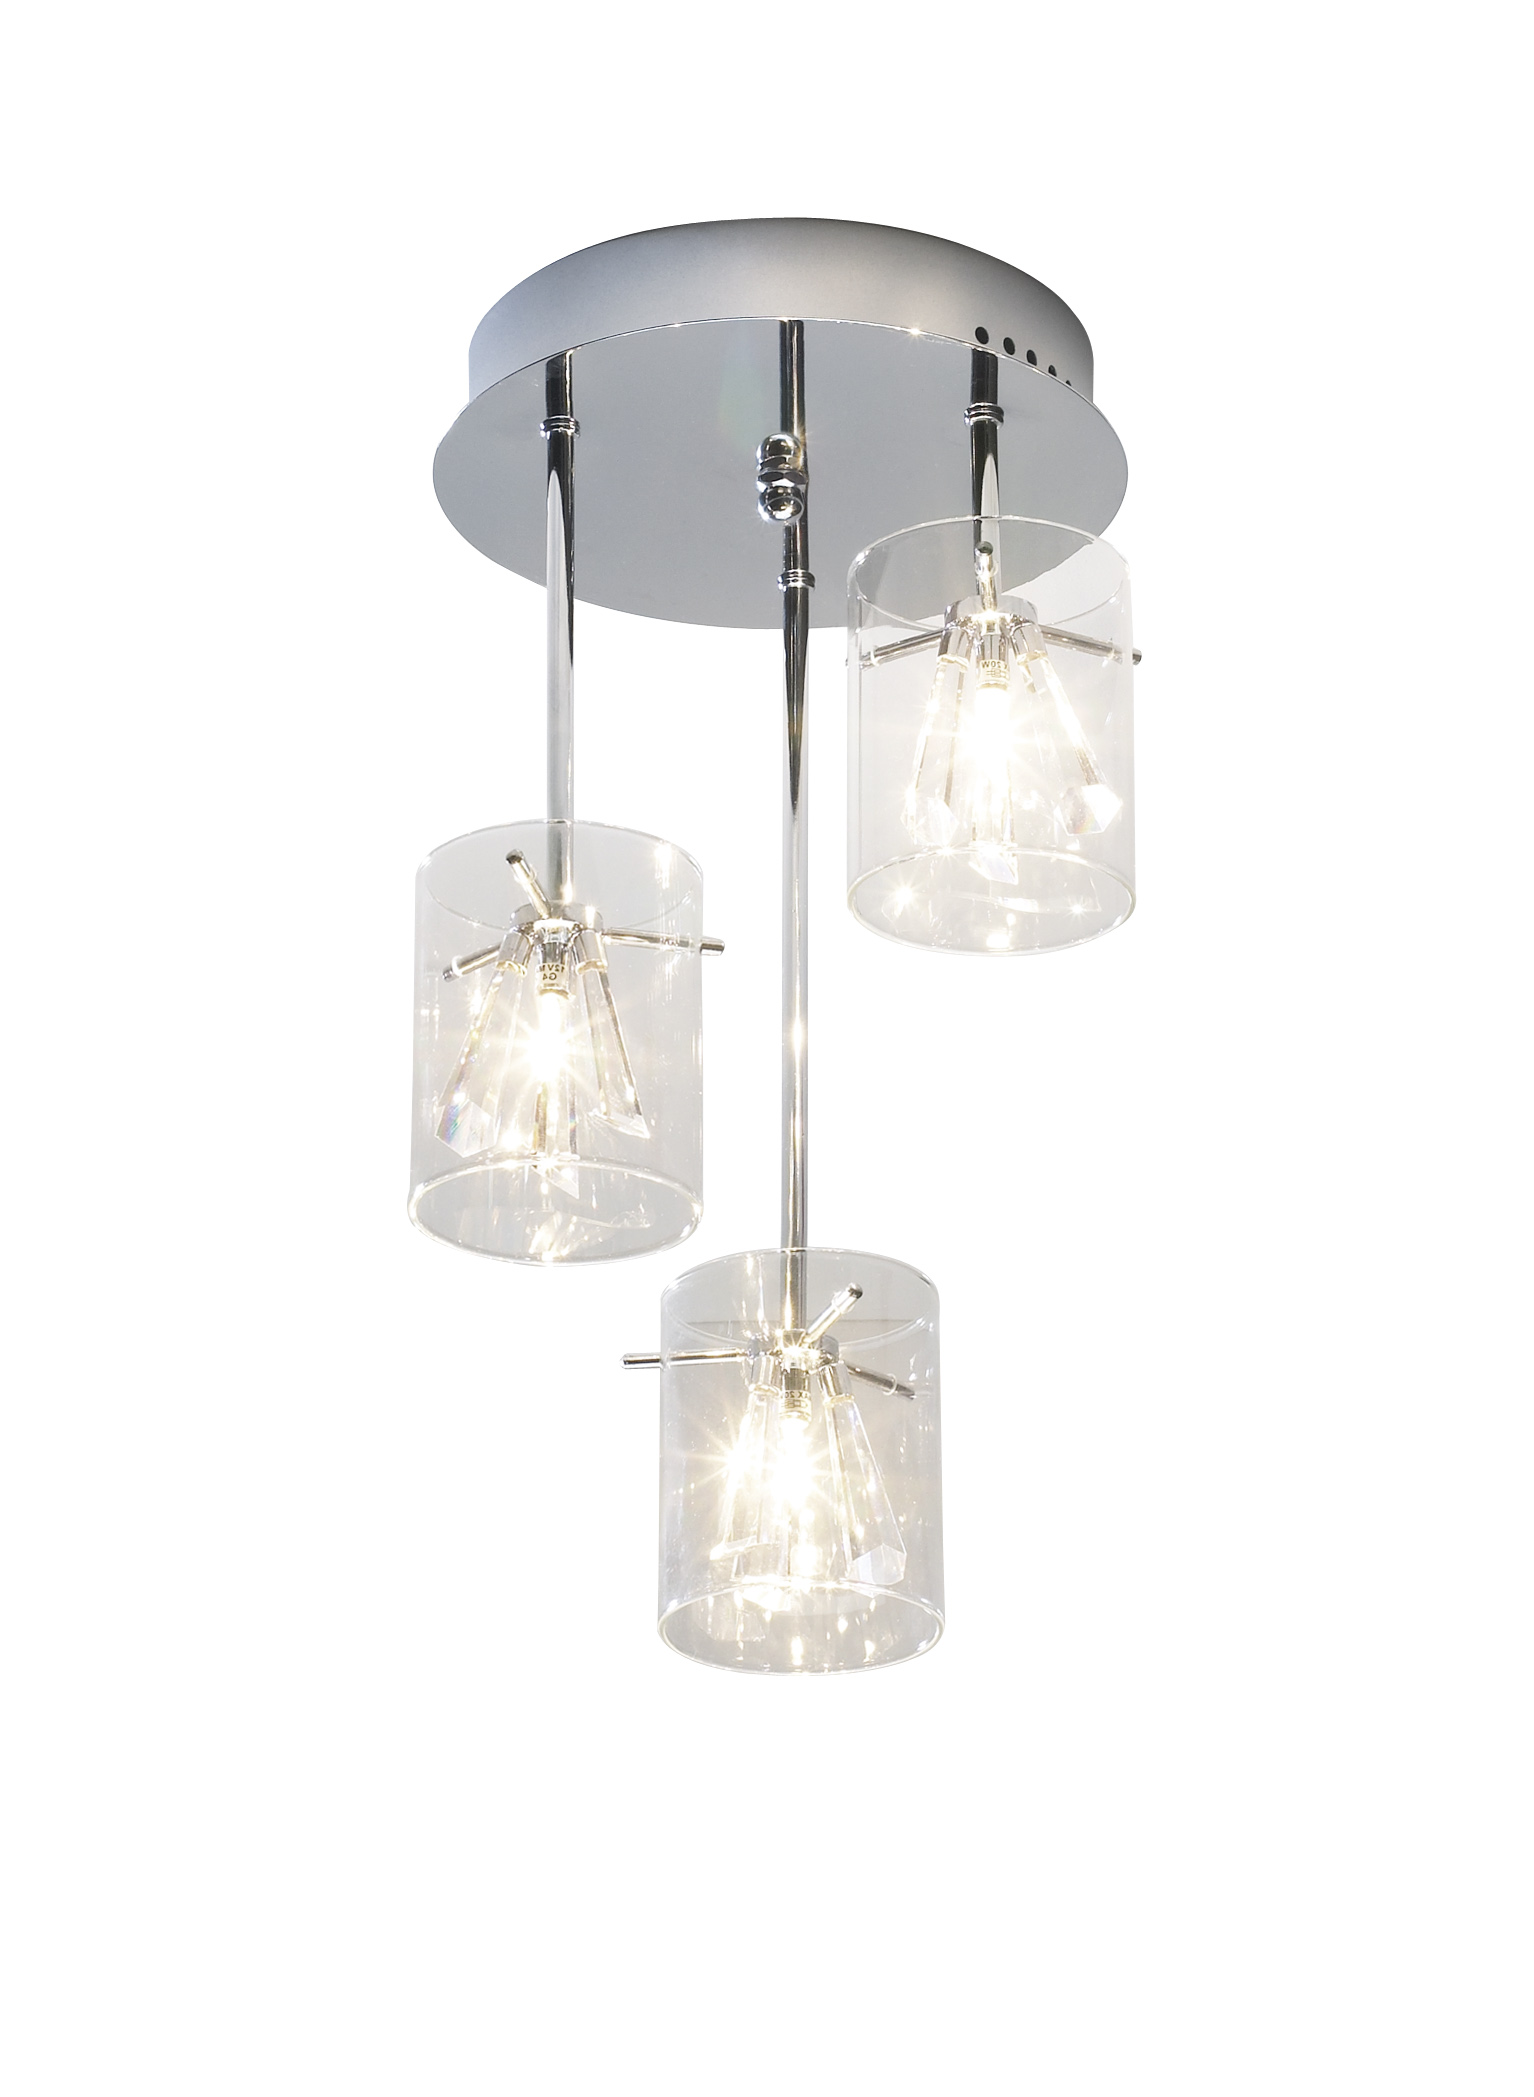 3 light modern crystal pendant light ceiling light polished chrome somerset 3 light modern crystal pendant light ceiling light polished chrome finish glass cylinder shade with crystal droppers mozeypictures Image collections